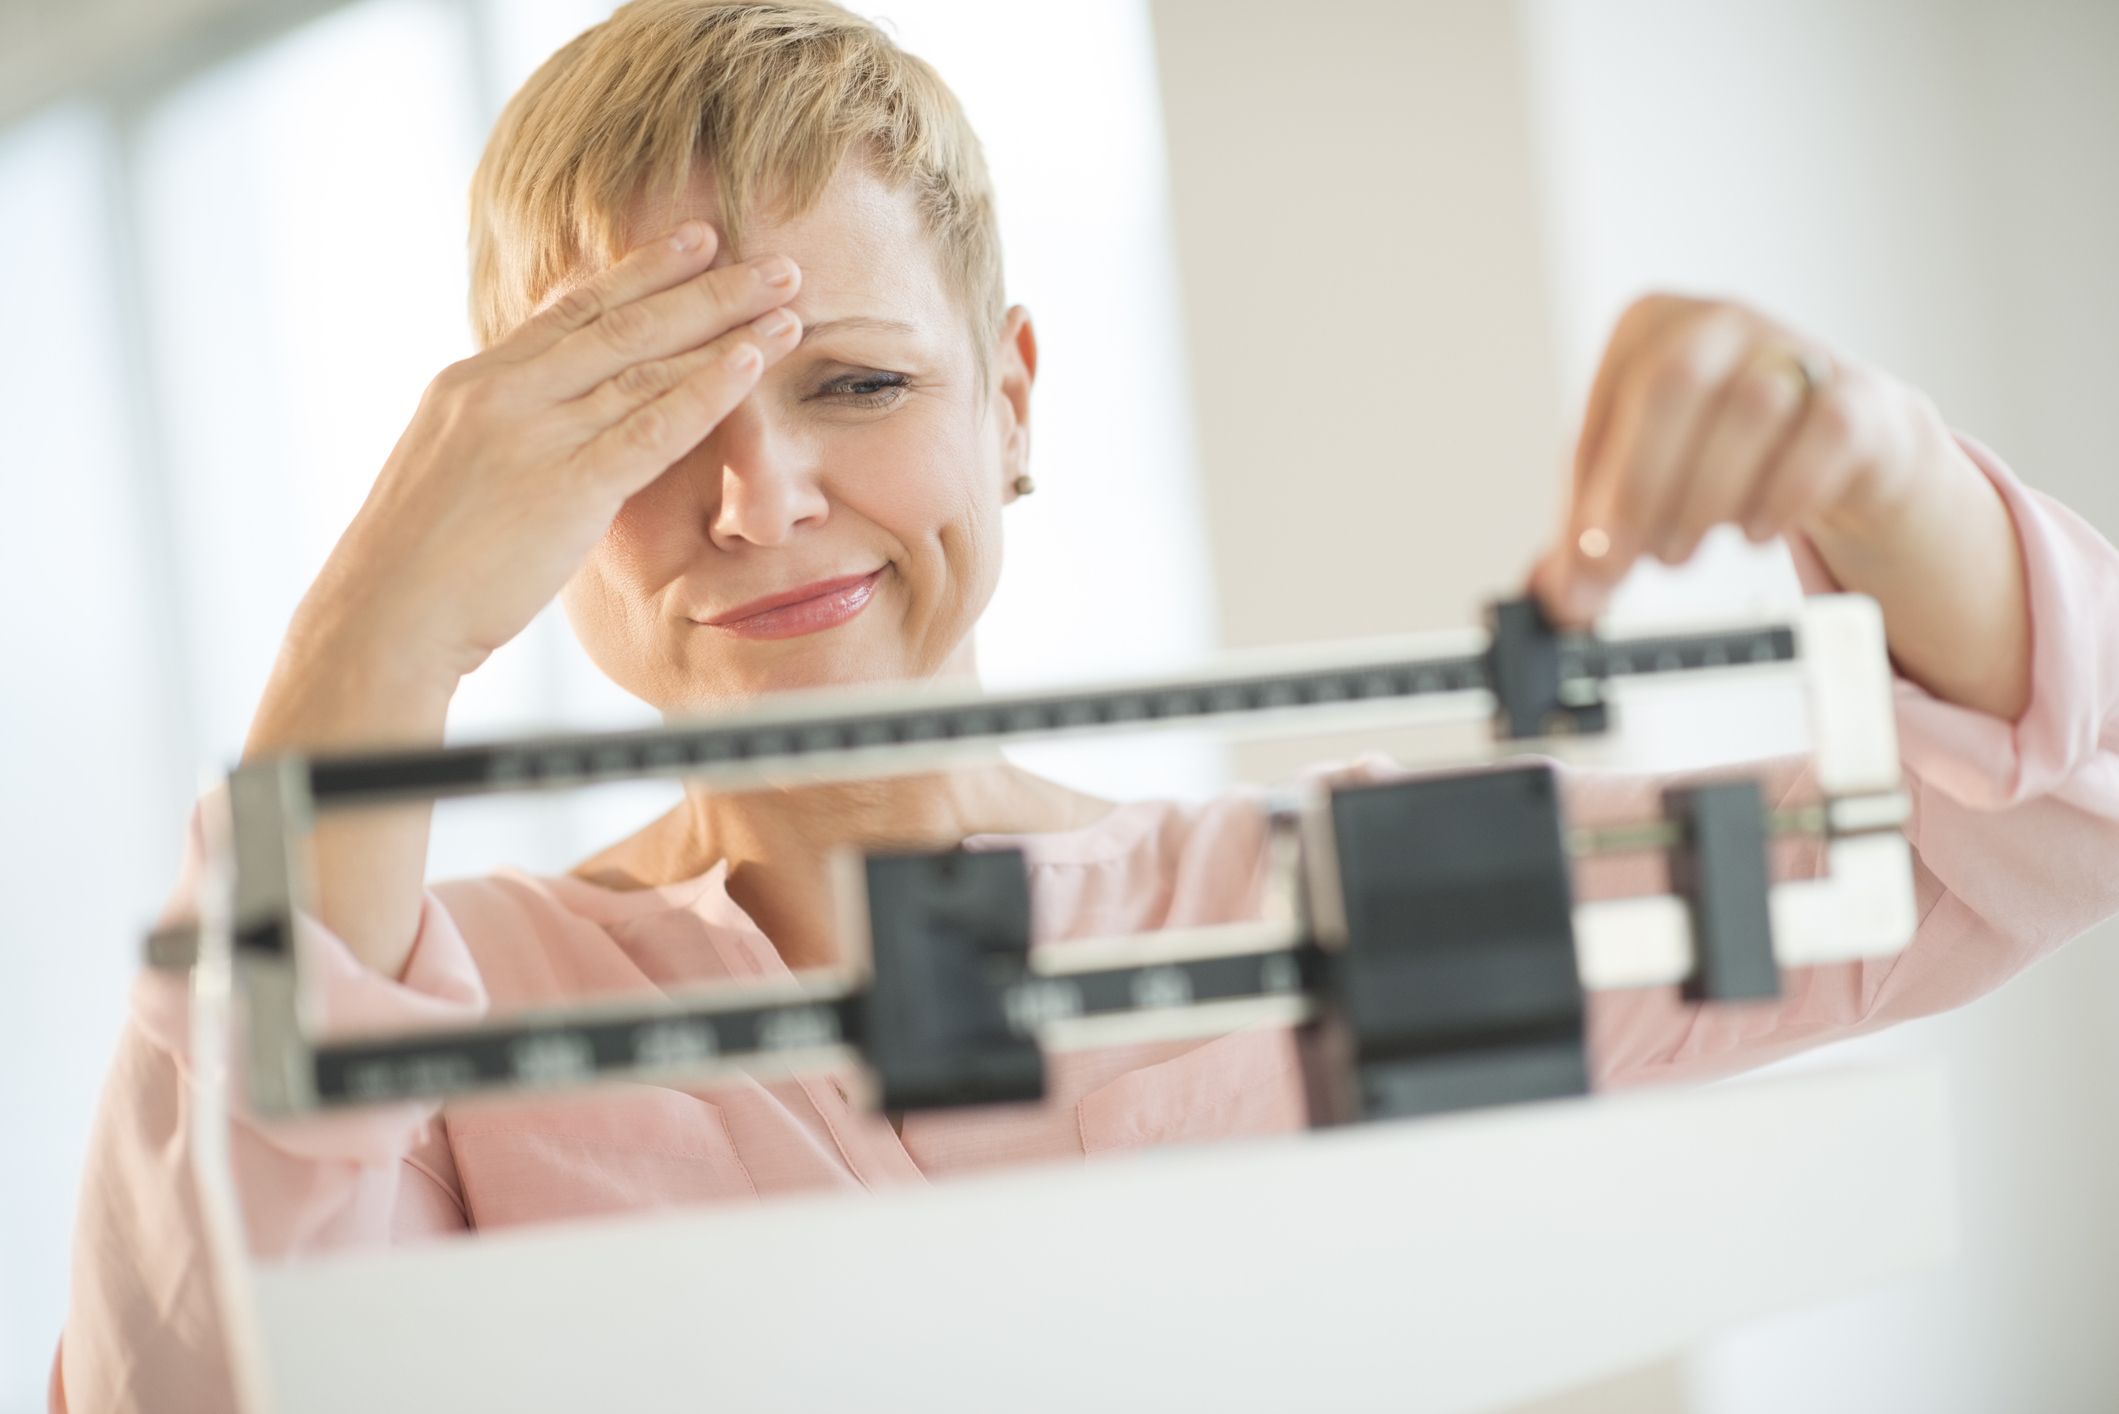 The sleepy solution to less menopausal belly fat